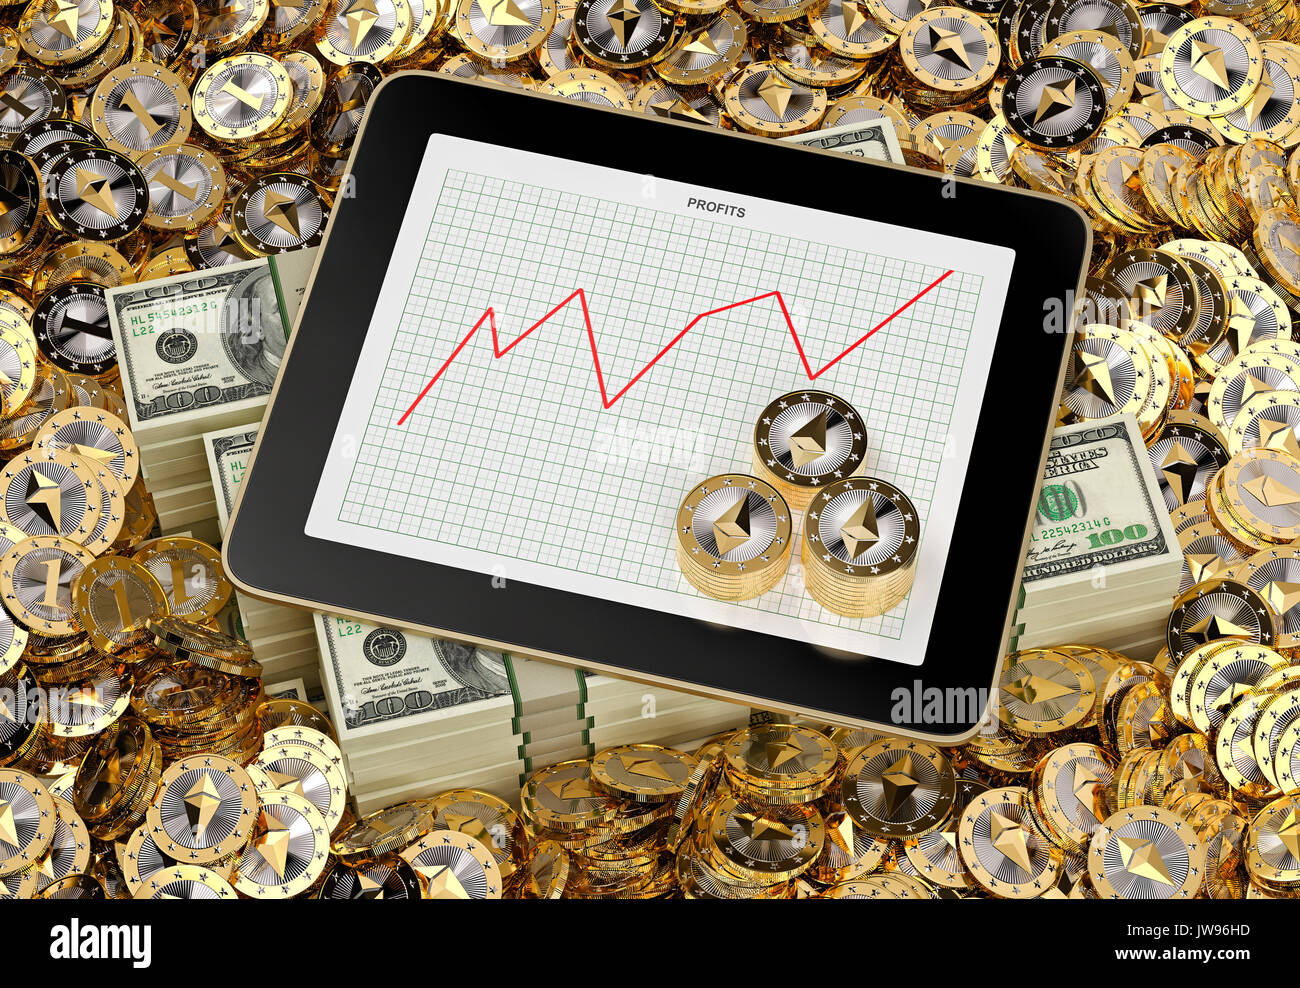 Lots of Ethereum Coins - Tablet showing graph of growing profits - 3D Rendering - Stock Image